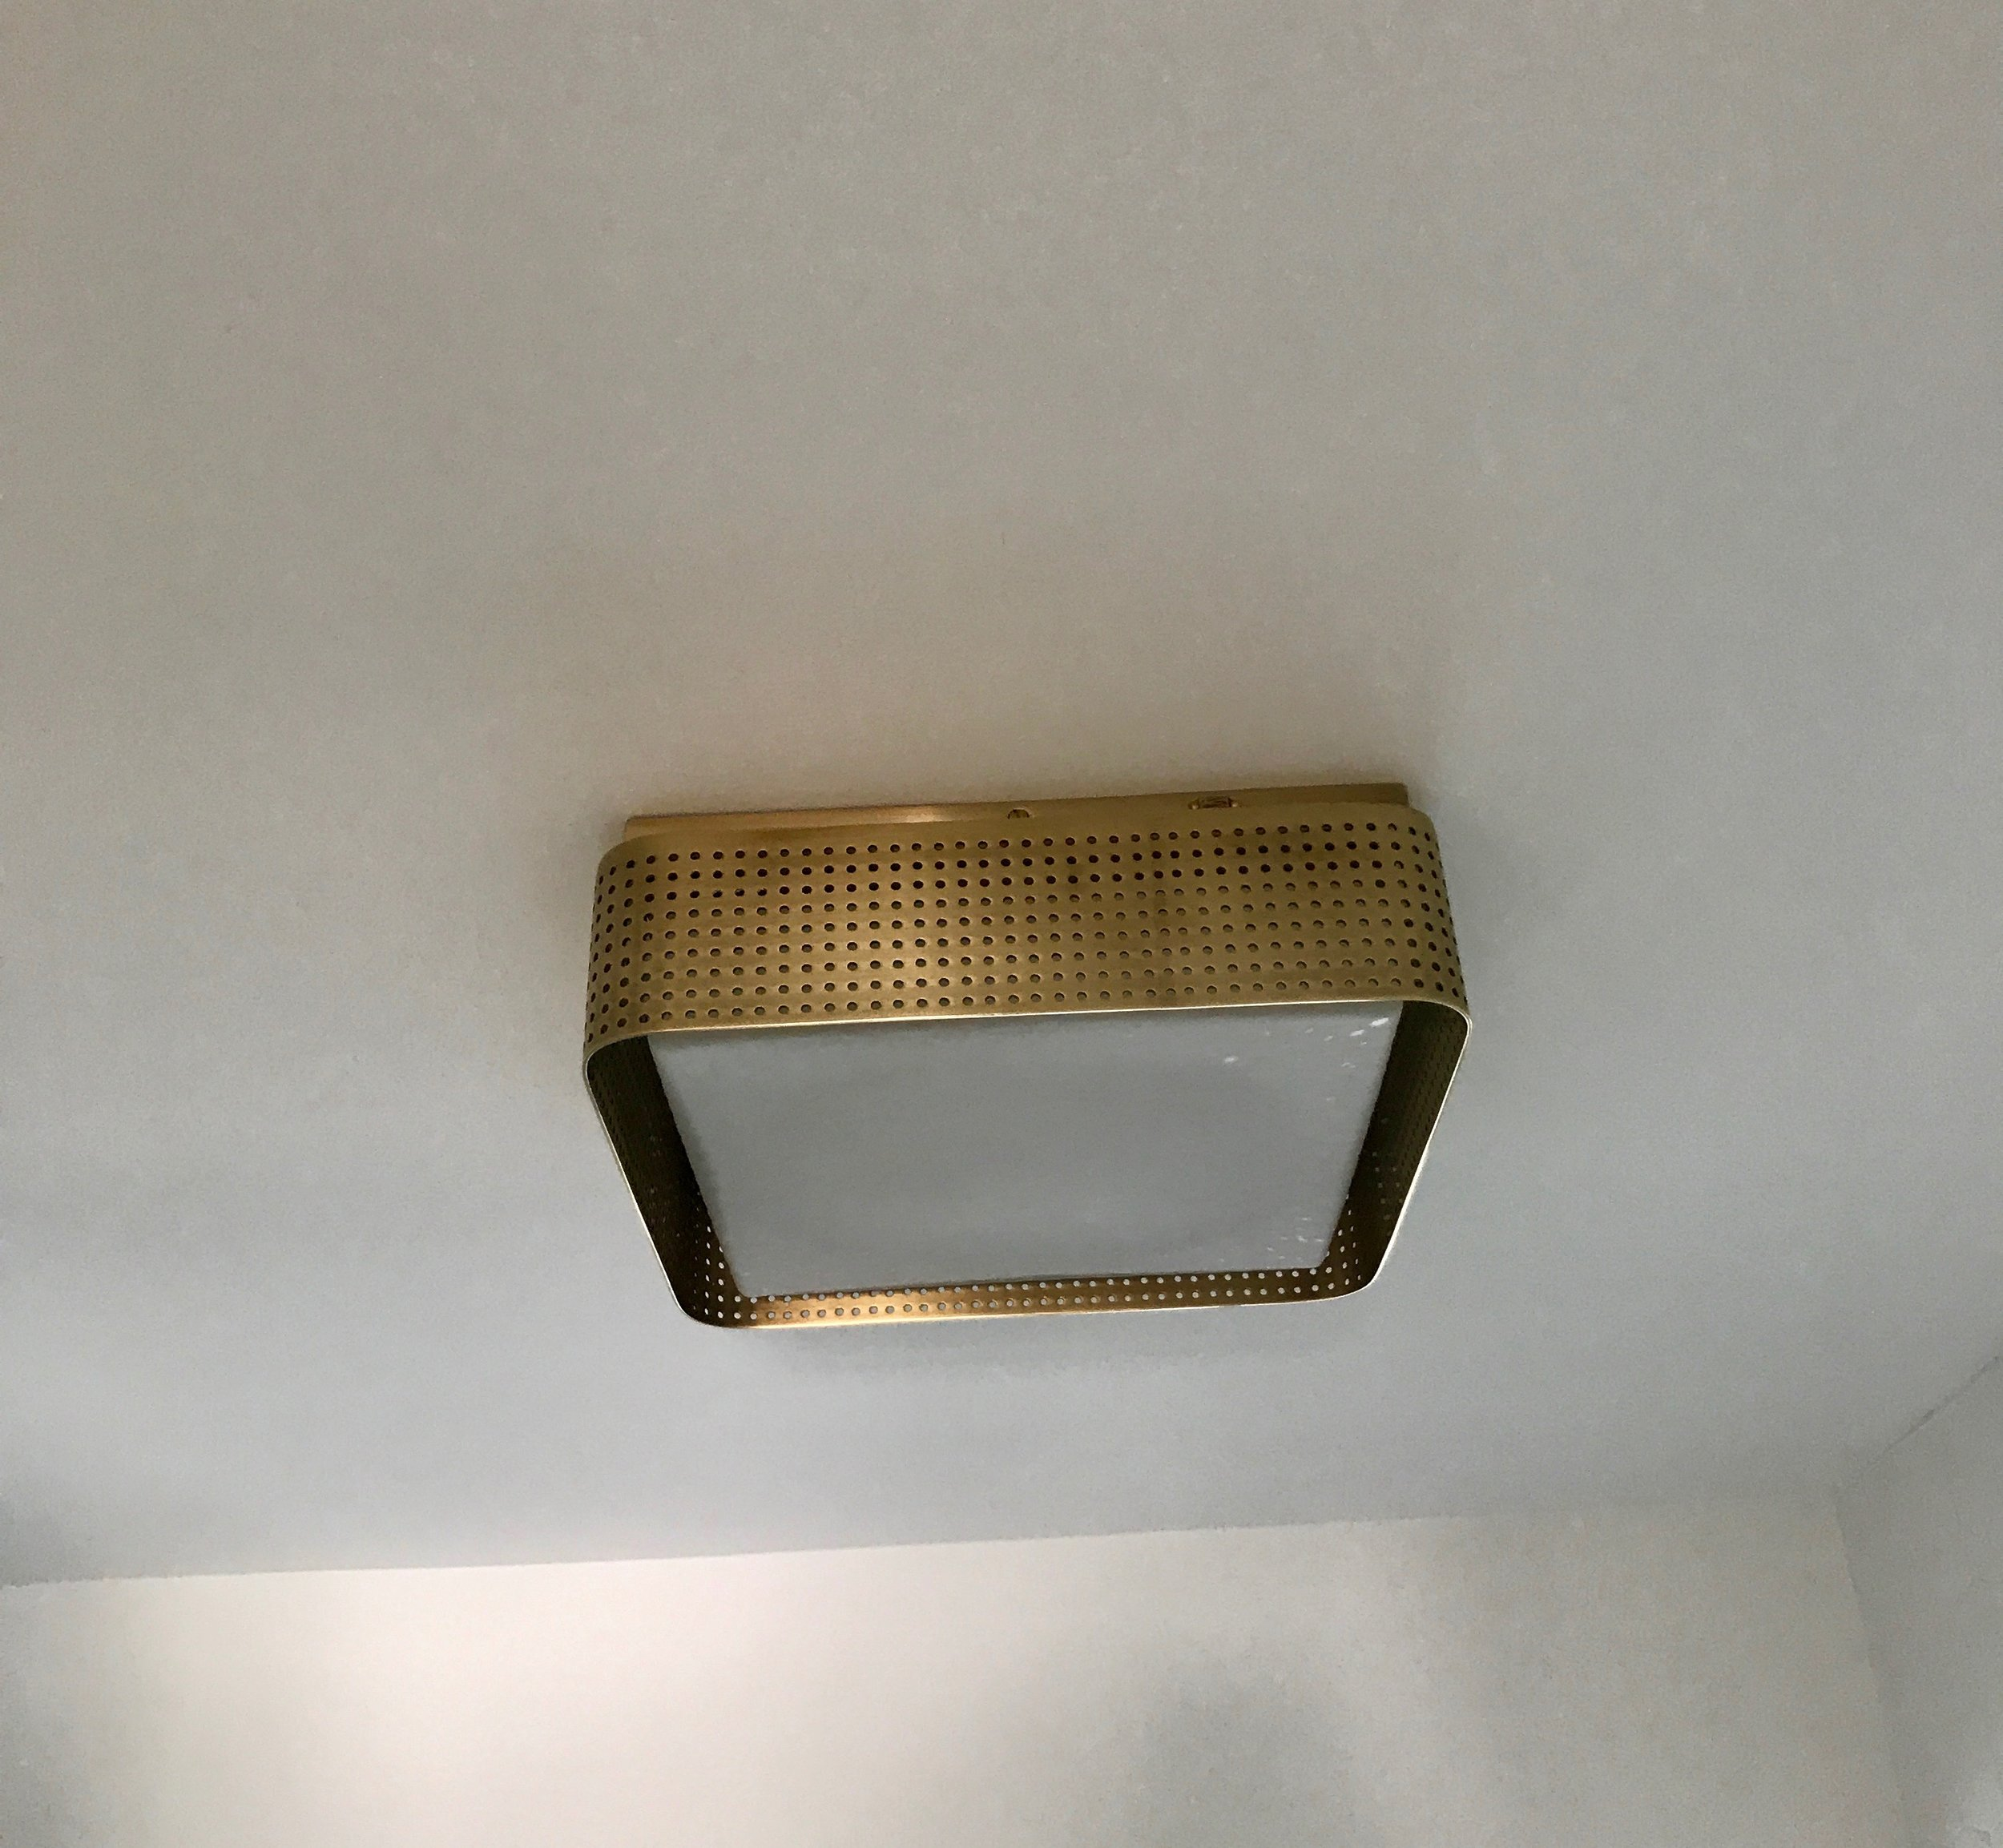 The Kelly Wearstler brass-wrapped ceiling light echoes the vanity pulls.